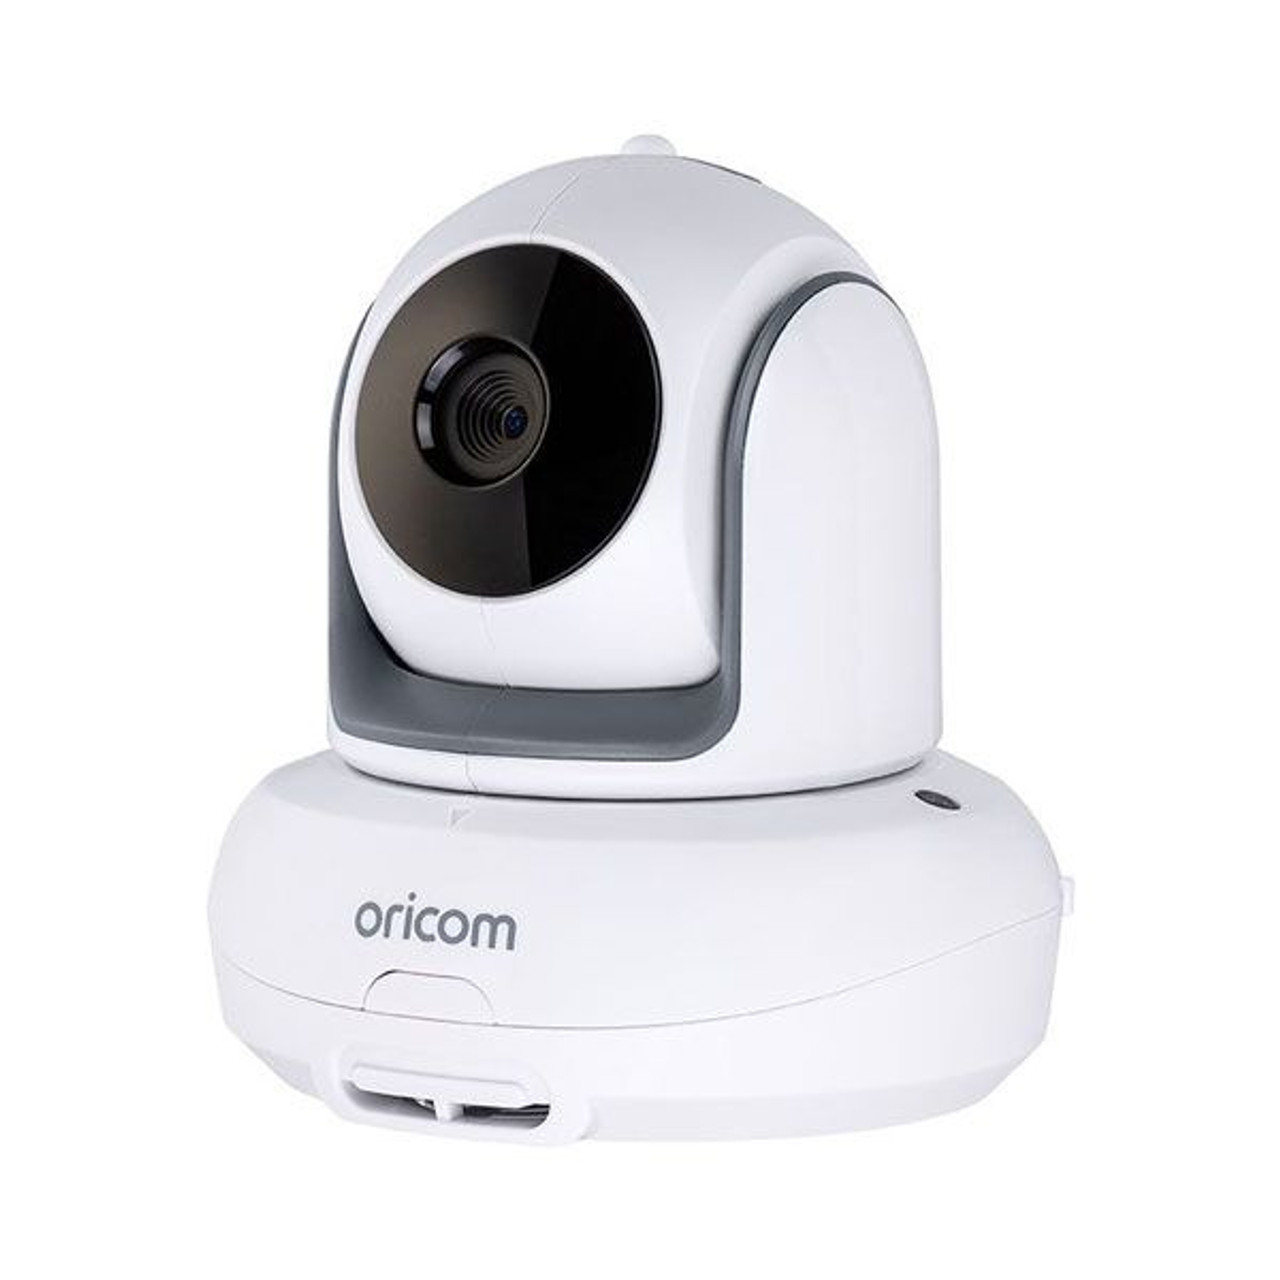 Oricom Secure875 Video Baby Monitor Touch 5 inch HD at Baby Barn Discounts Oricom SC875 5 inch Touchscreen Video Audio Baby Monitor with motorised pan-tilt camera.